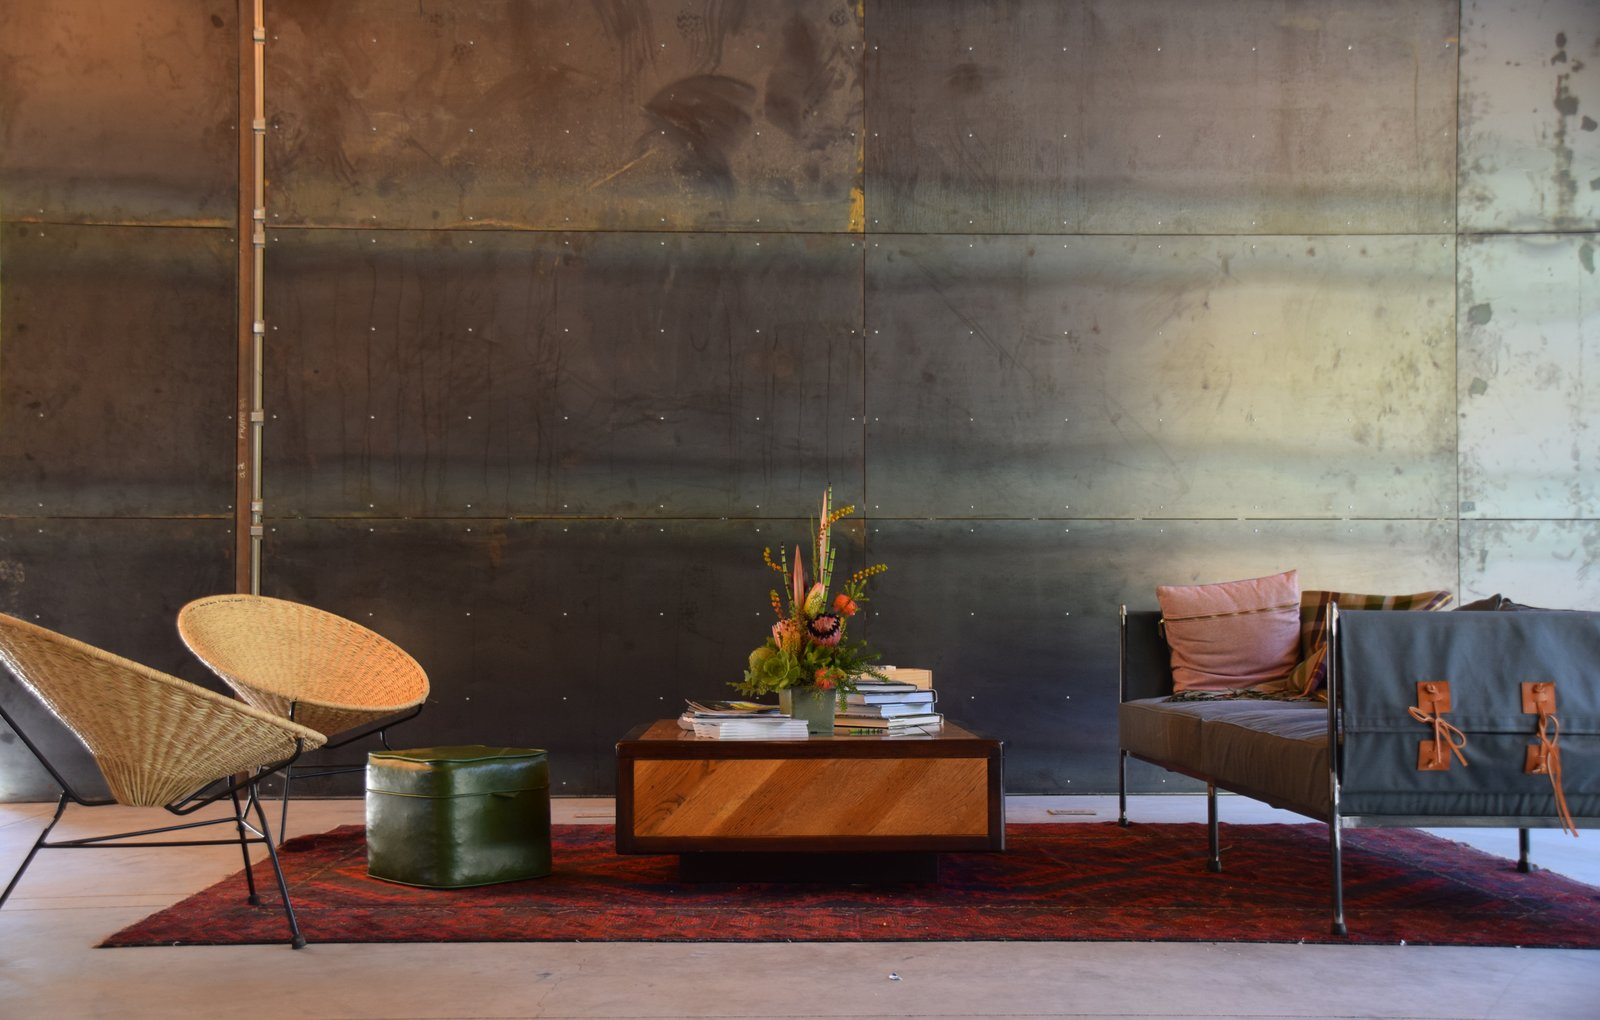 Geremia Design created a texturally rich lounge area, its wood, leather, and textile elements softening the steel backdrop.